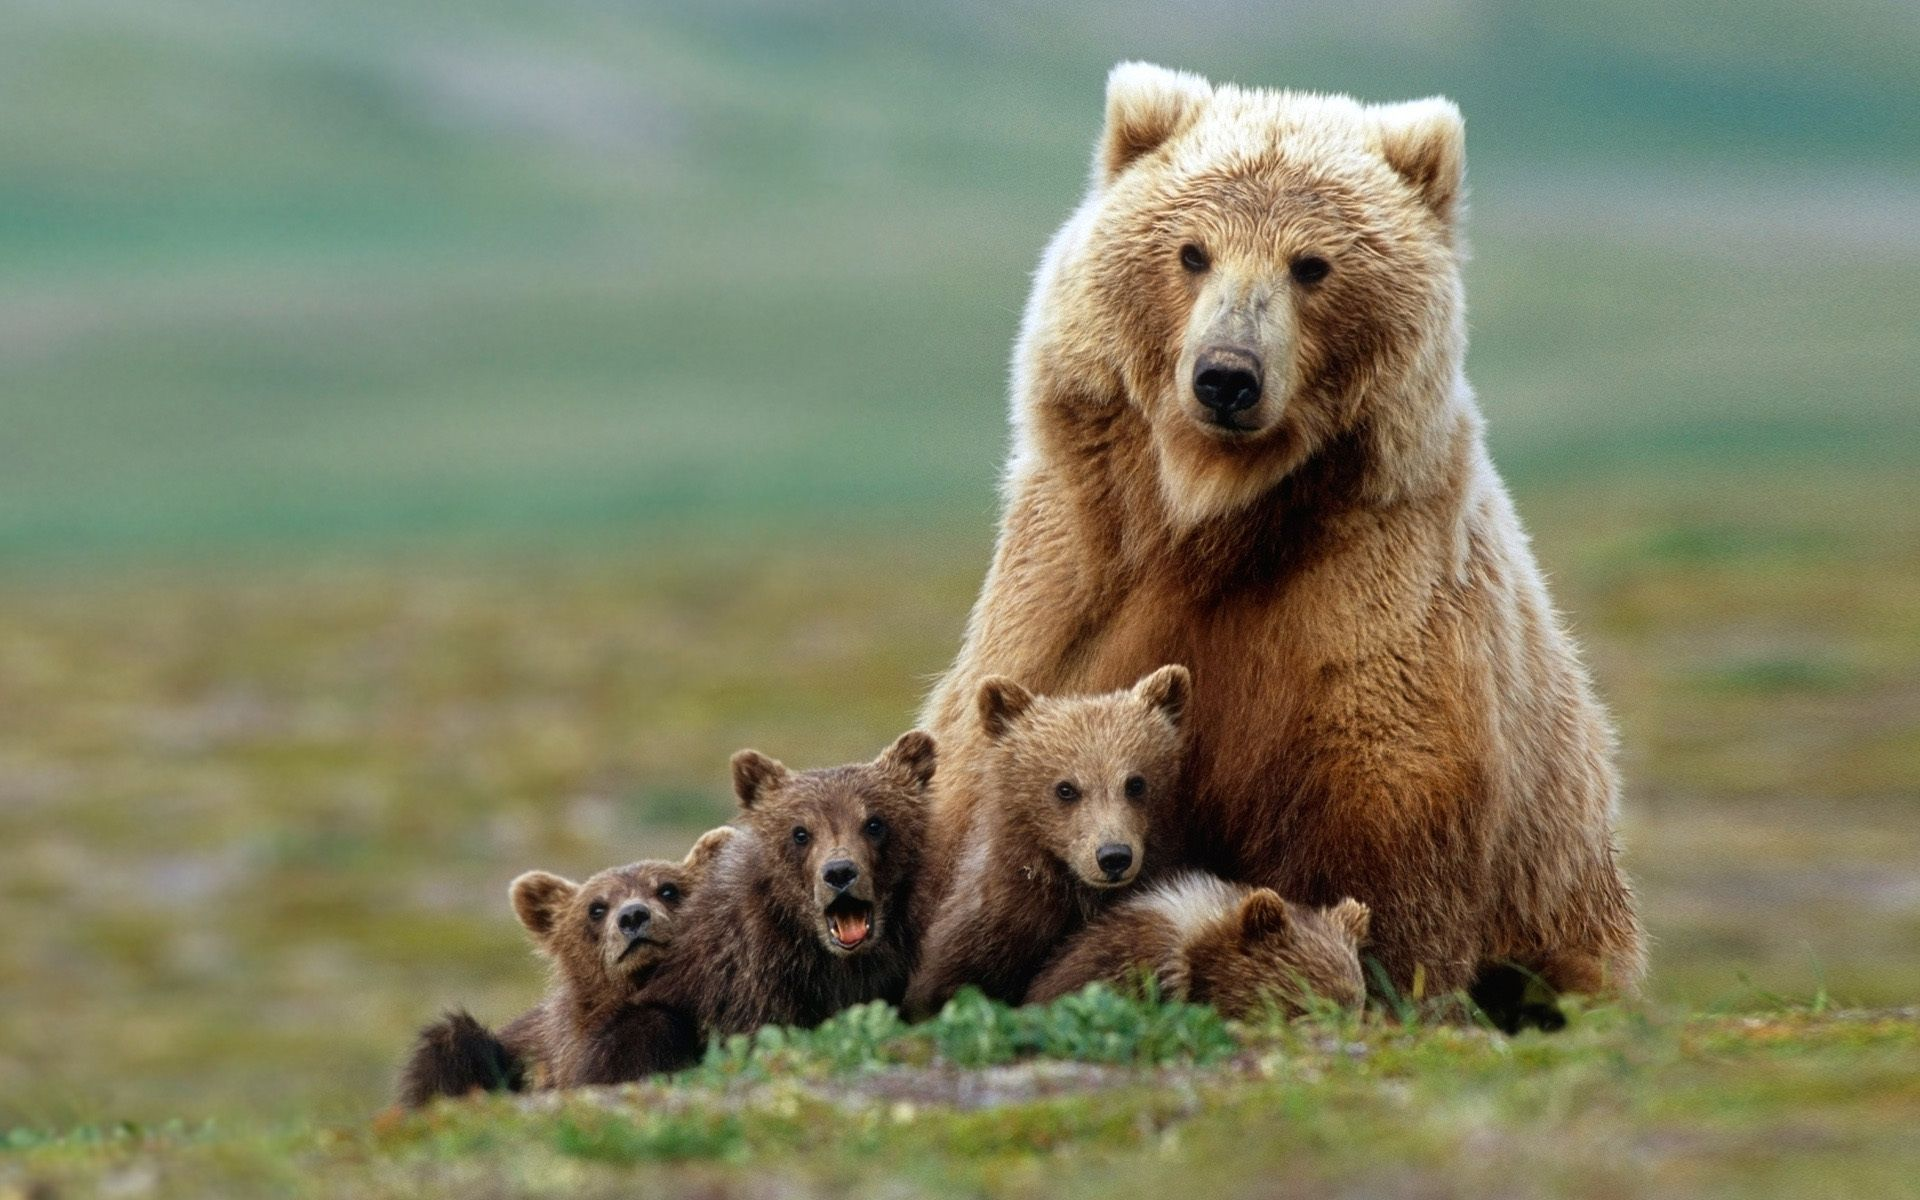 Tough bear tough pinterest animals brown and grizzly bears hd red panda eating bamboo wallpaper bears animals wallpapers for sciox Gallery